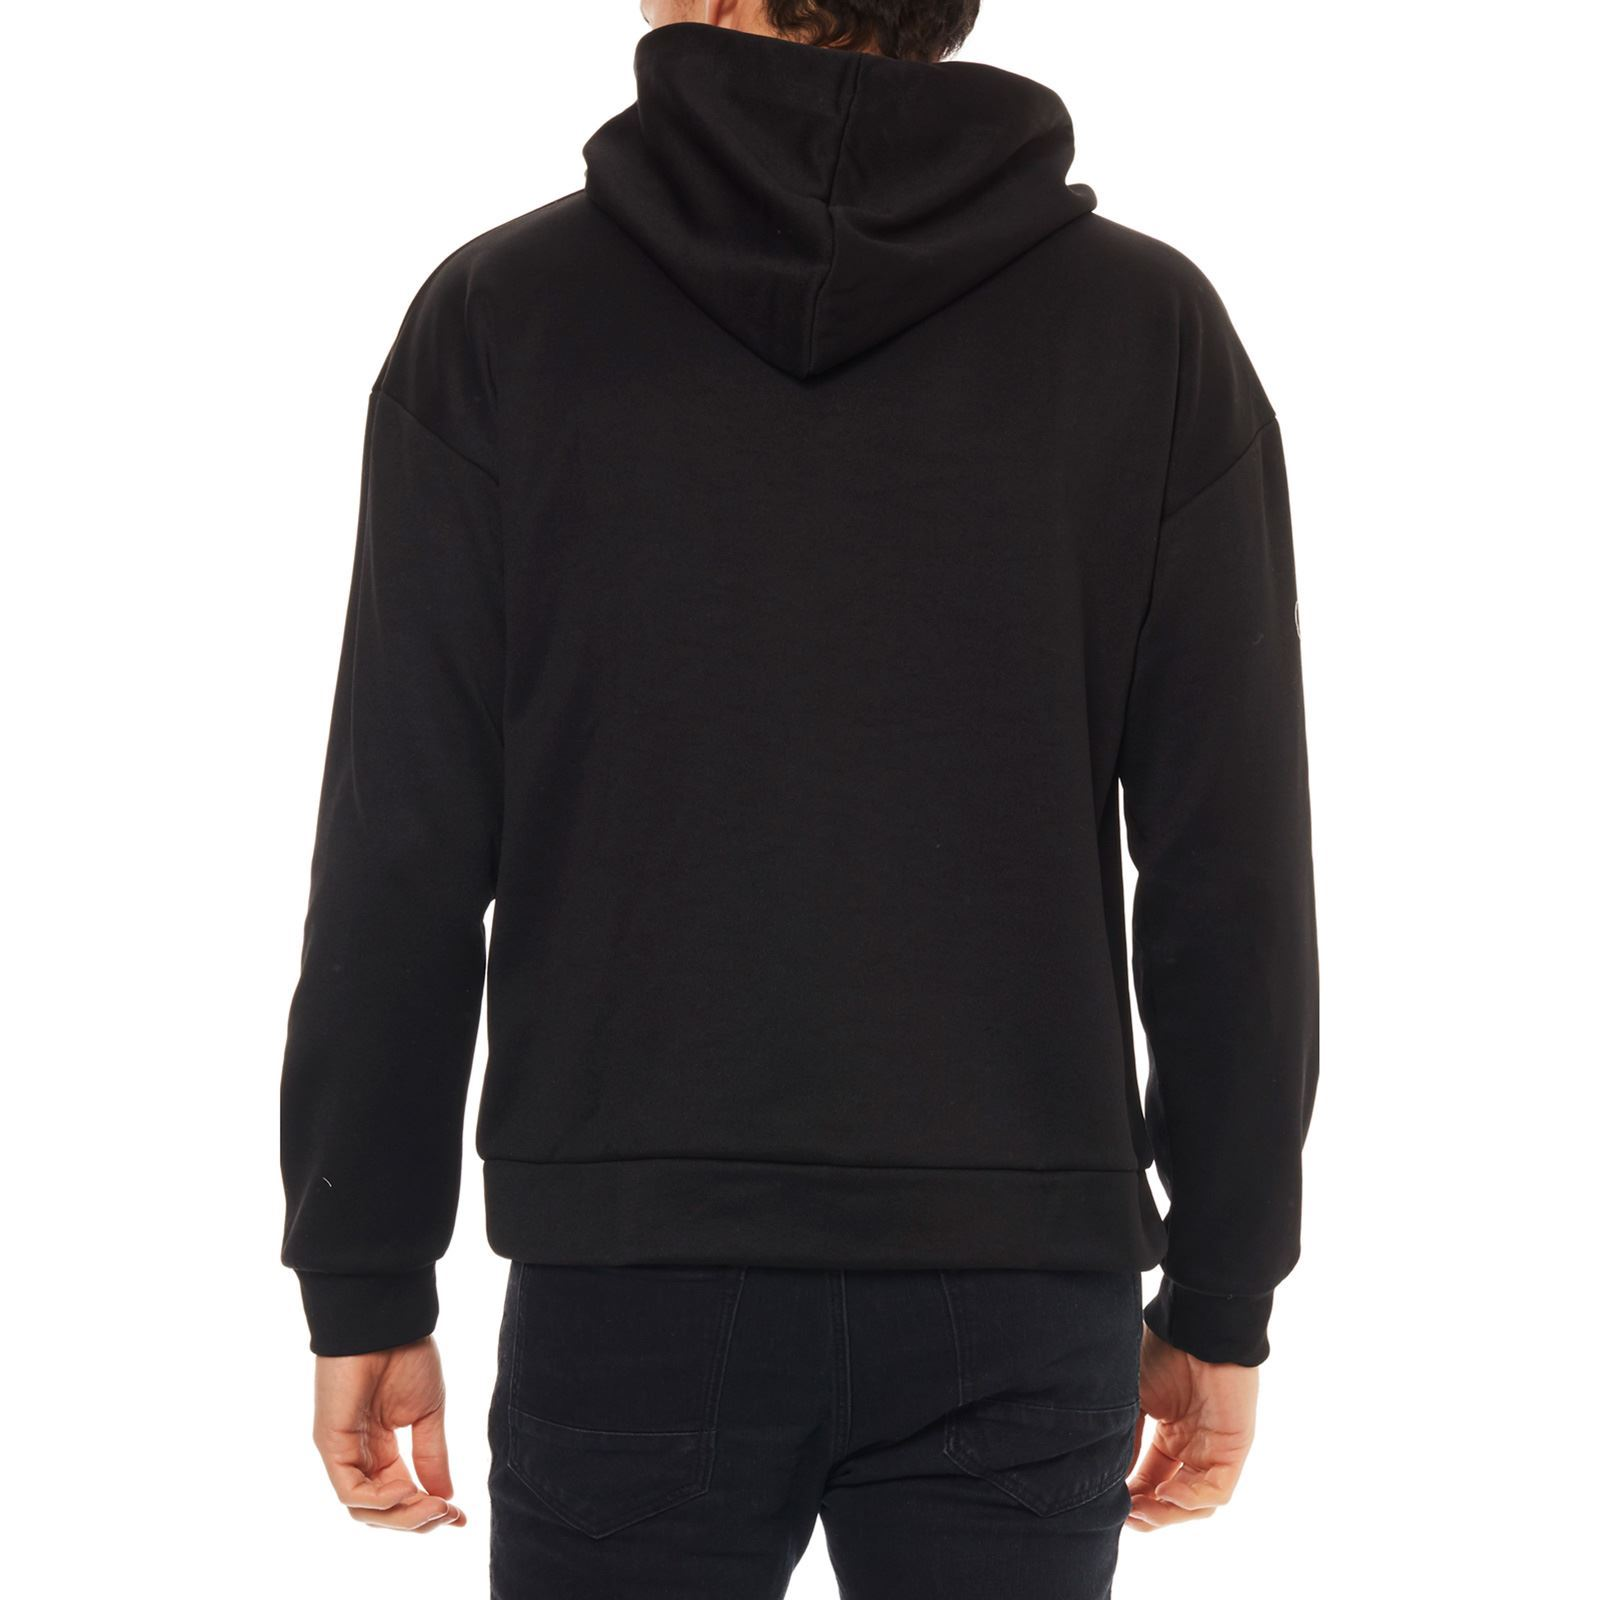 Homme a V Onlyamp; Sweat CapucheNoir Sons SUMpzGqV